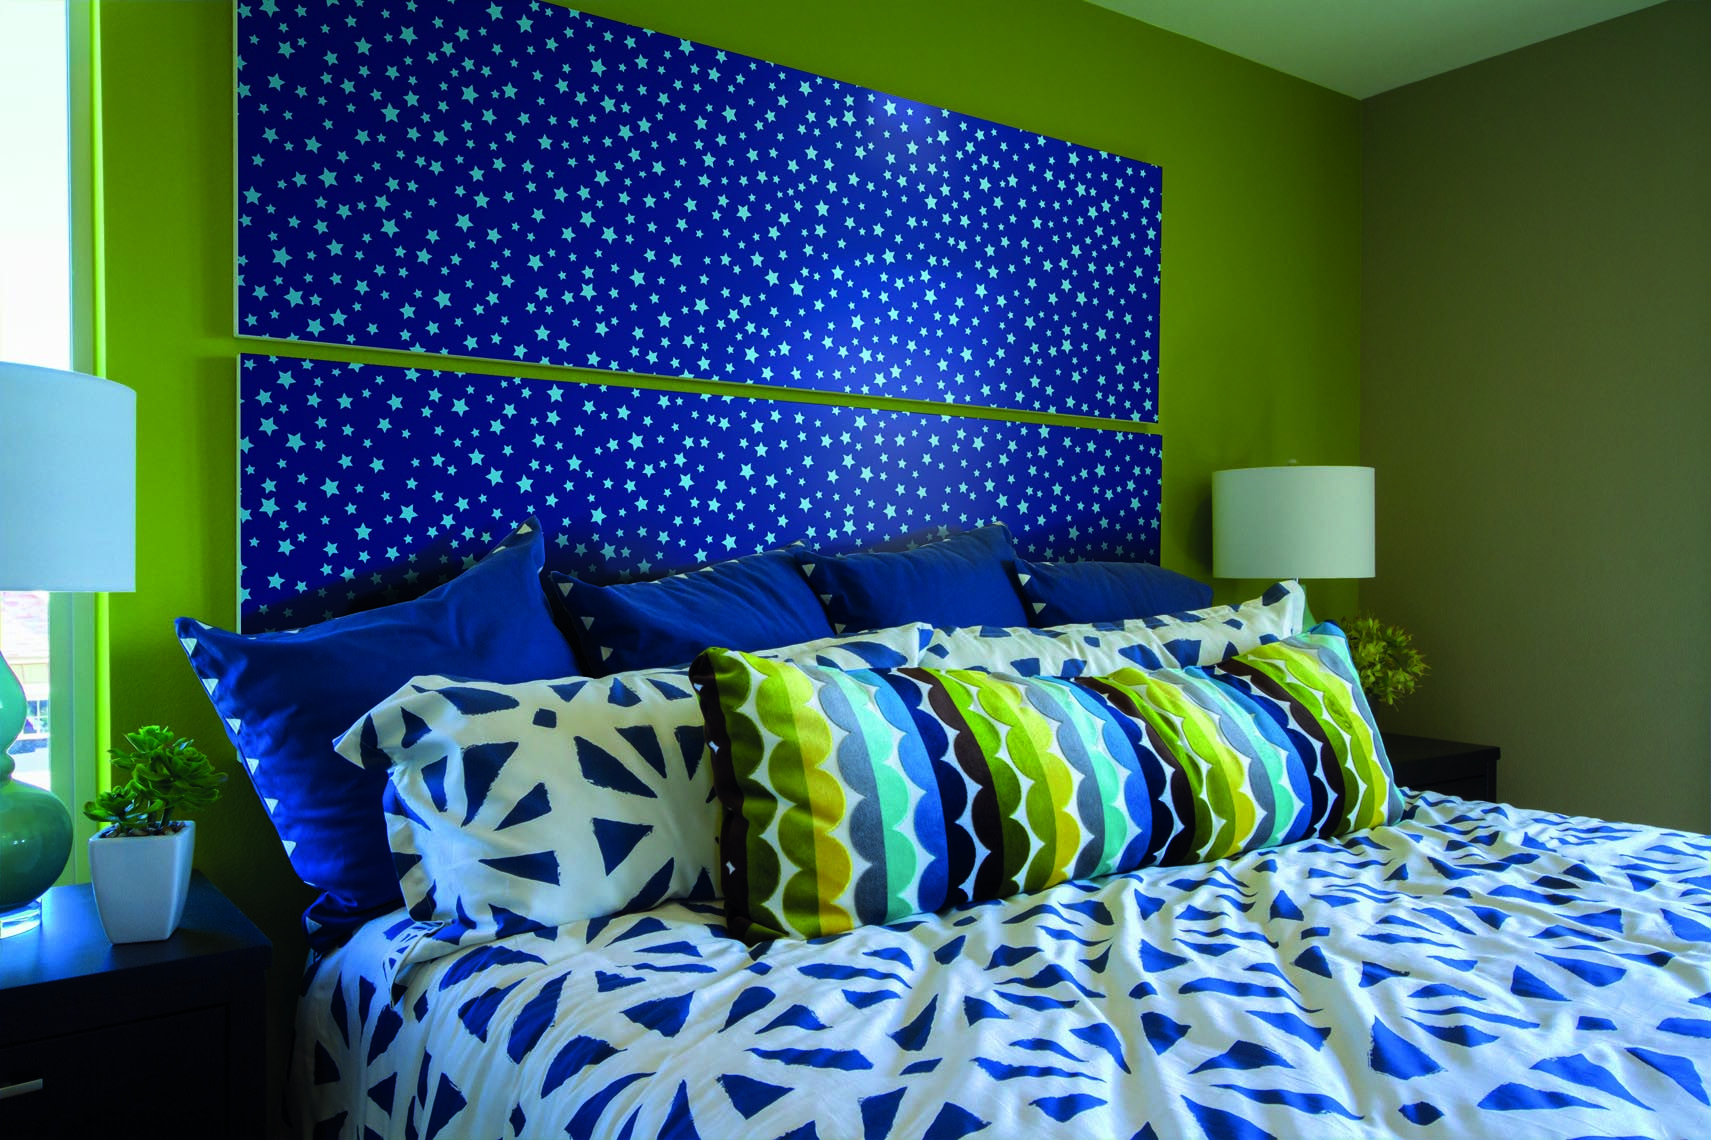 Create Atmosphere With A Handmade Headboard In Velvet Textured Skystars By  D C Fix® The Pale Blue Stars On The Midnight Blue Background Give A Stunning  ...